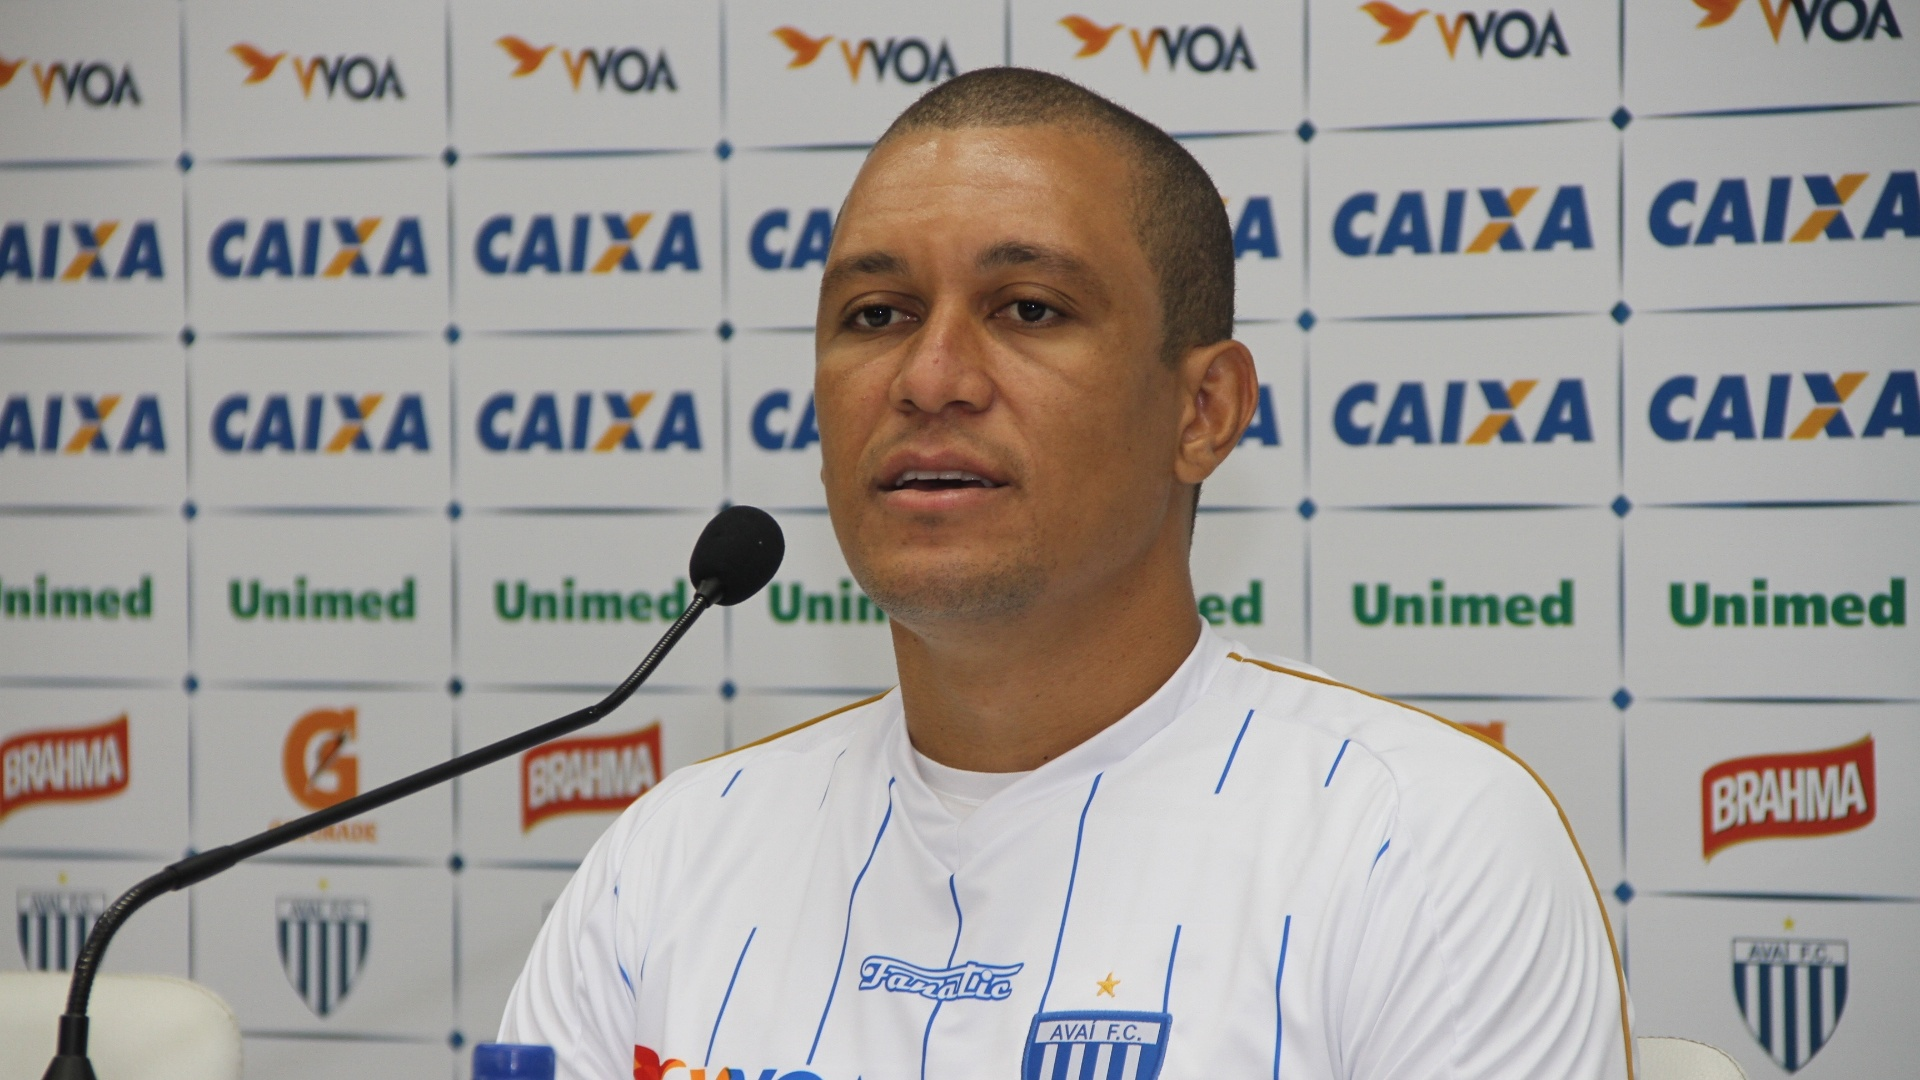 Eduardo Costa, volante do Avaí